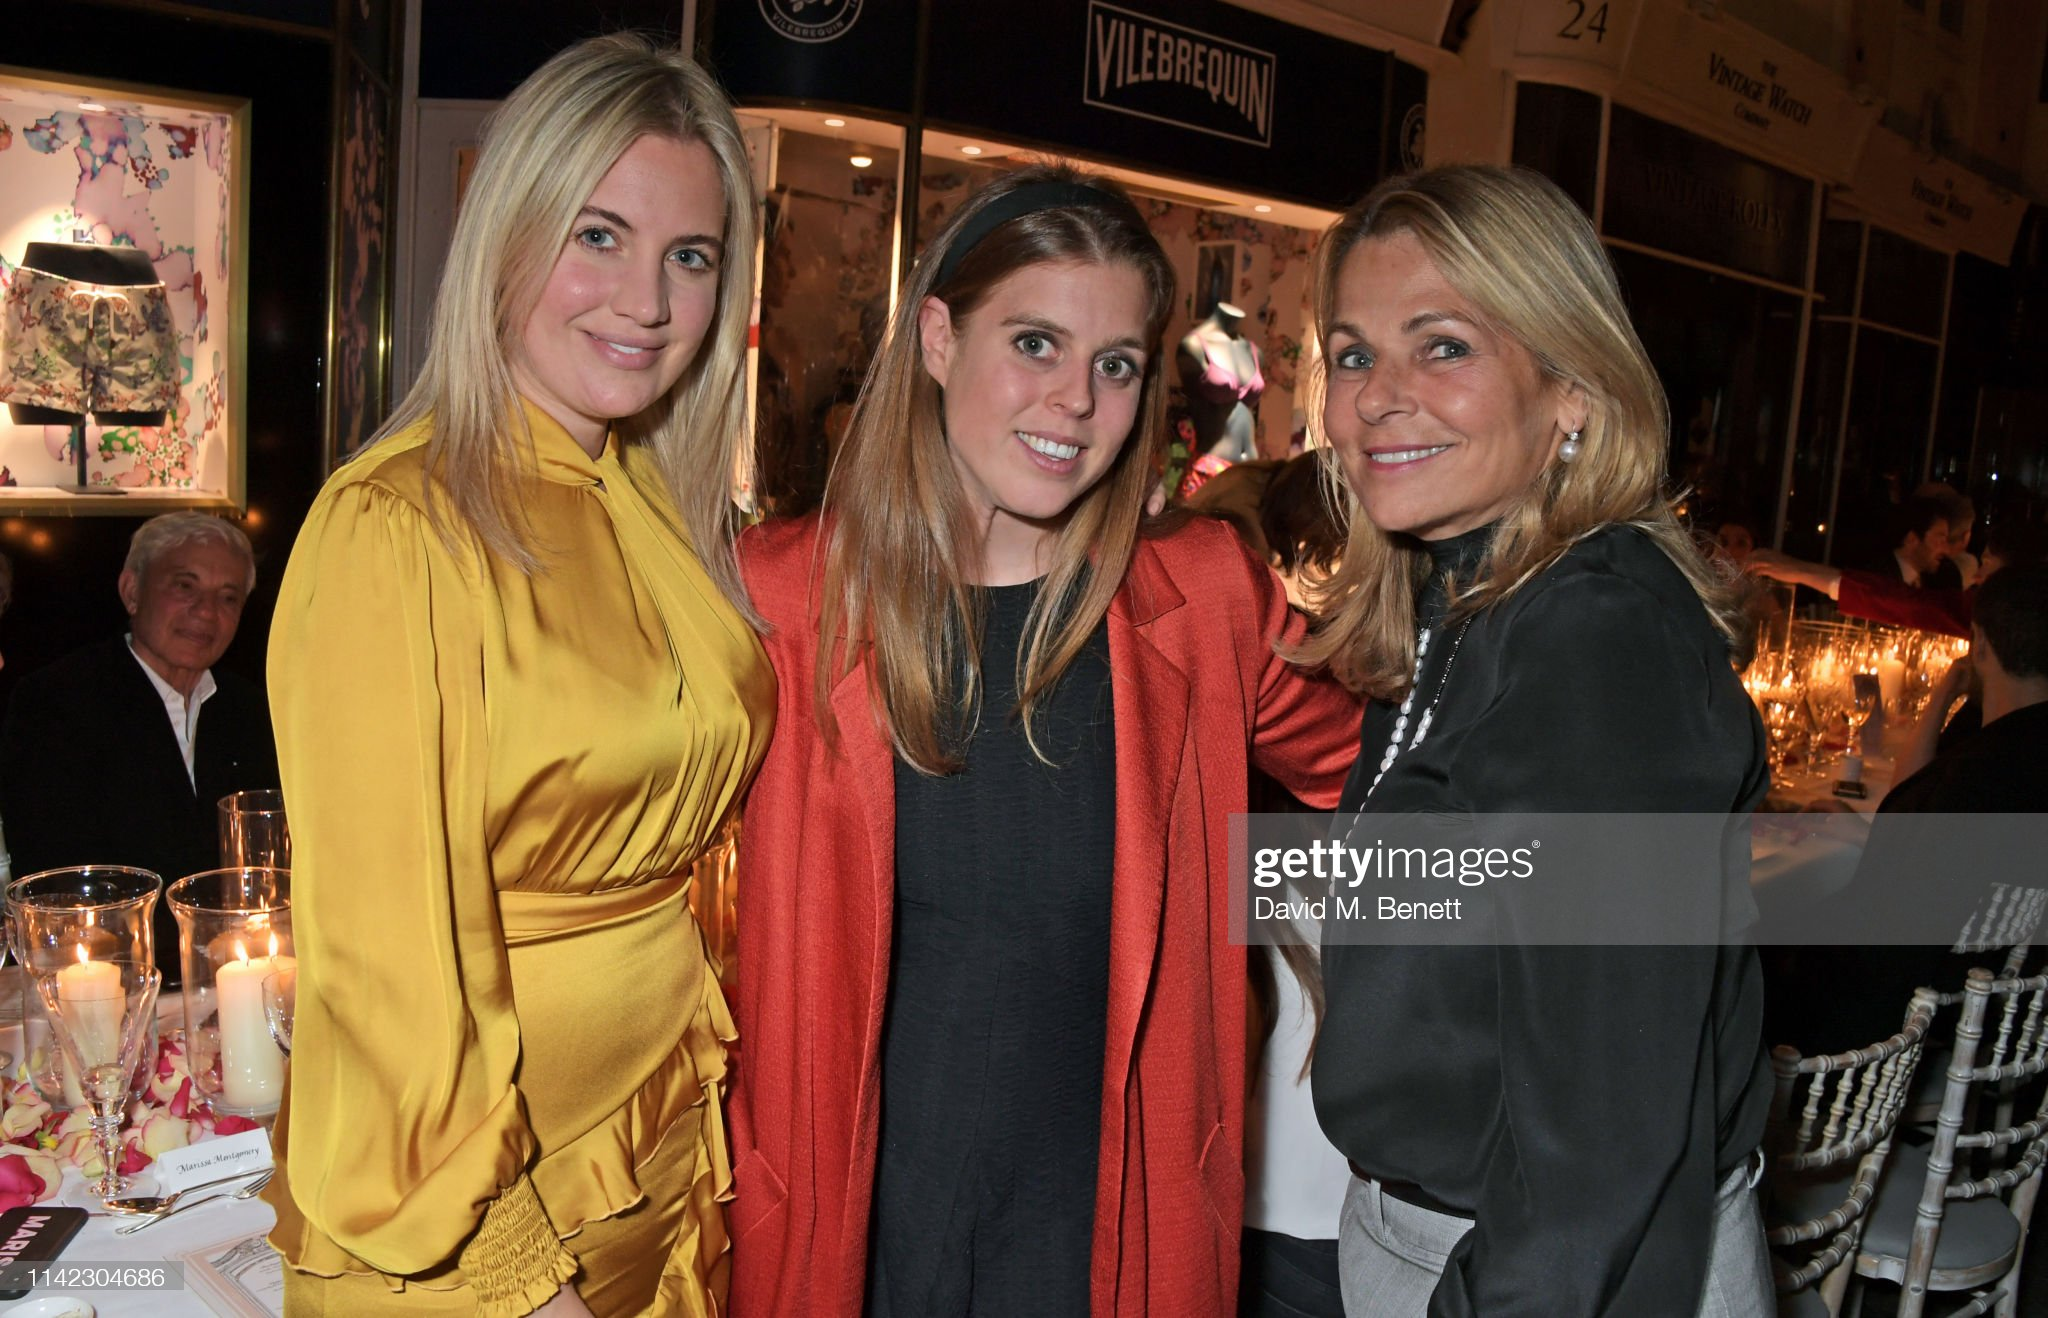 https://media.gettyimages.com/photos/marissa-montgomery-princess-beatrice-of-york-and-debra-reuben-attend-picture-id1142304686?s=2048x2048